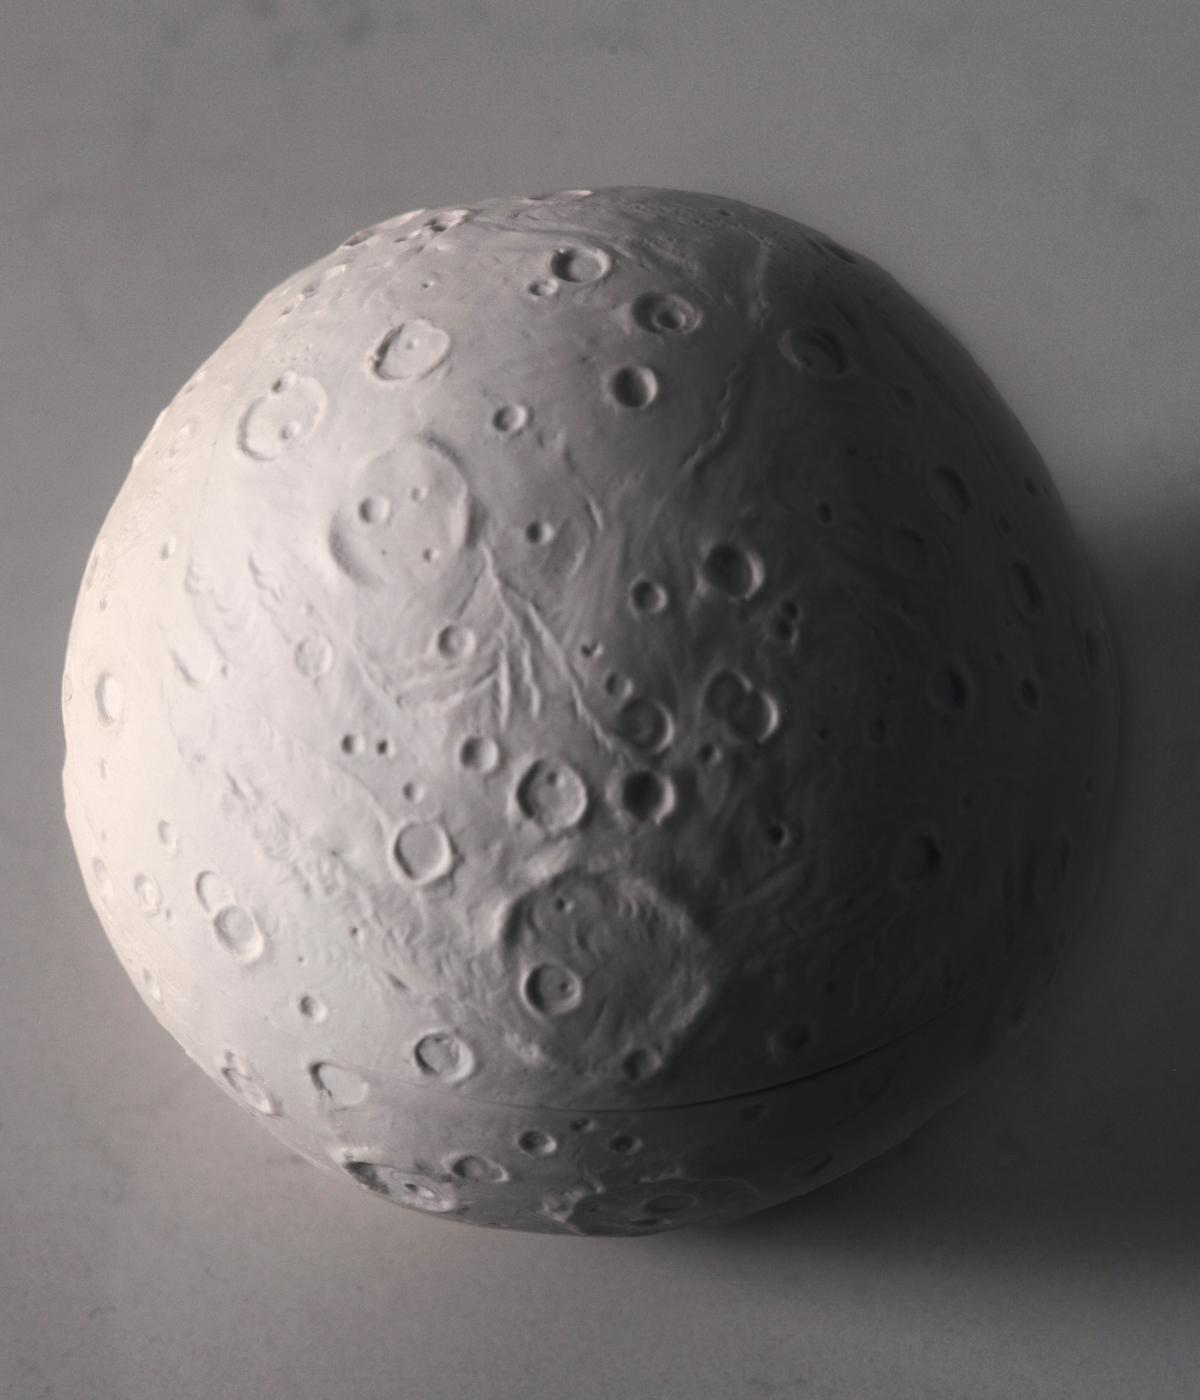 The Exoplanet candle by Daniel Arsham and Joya